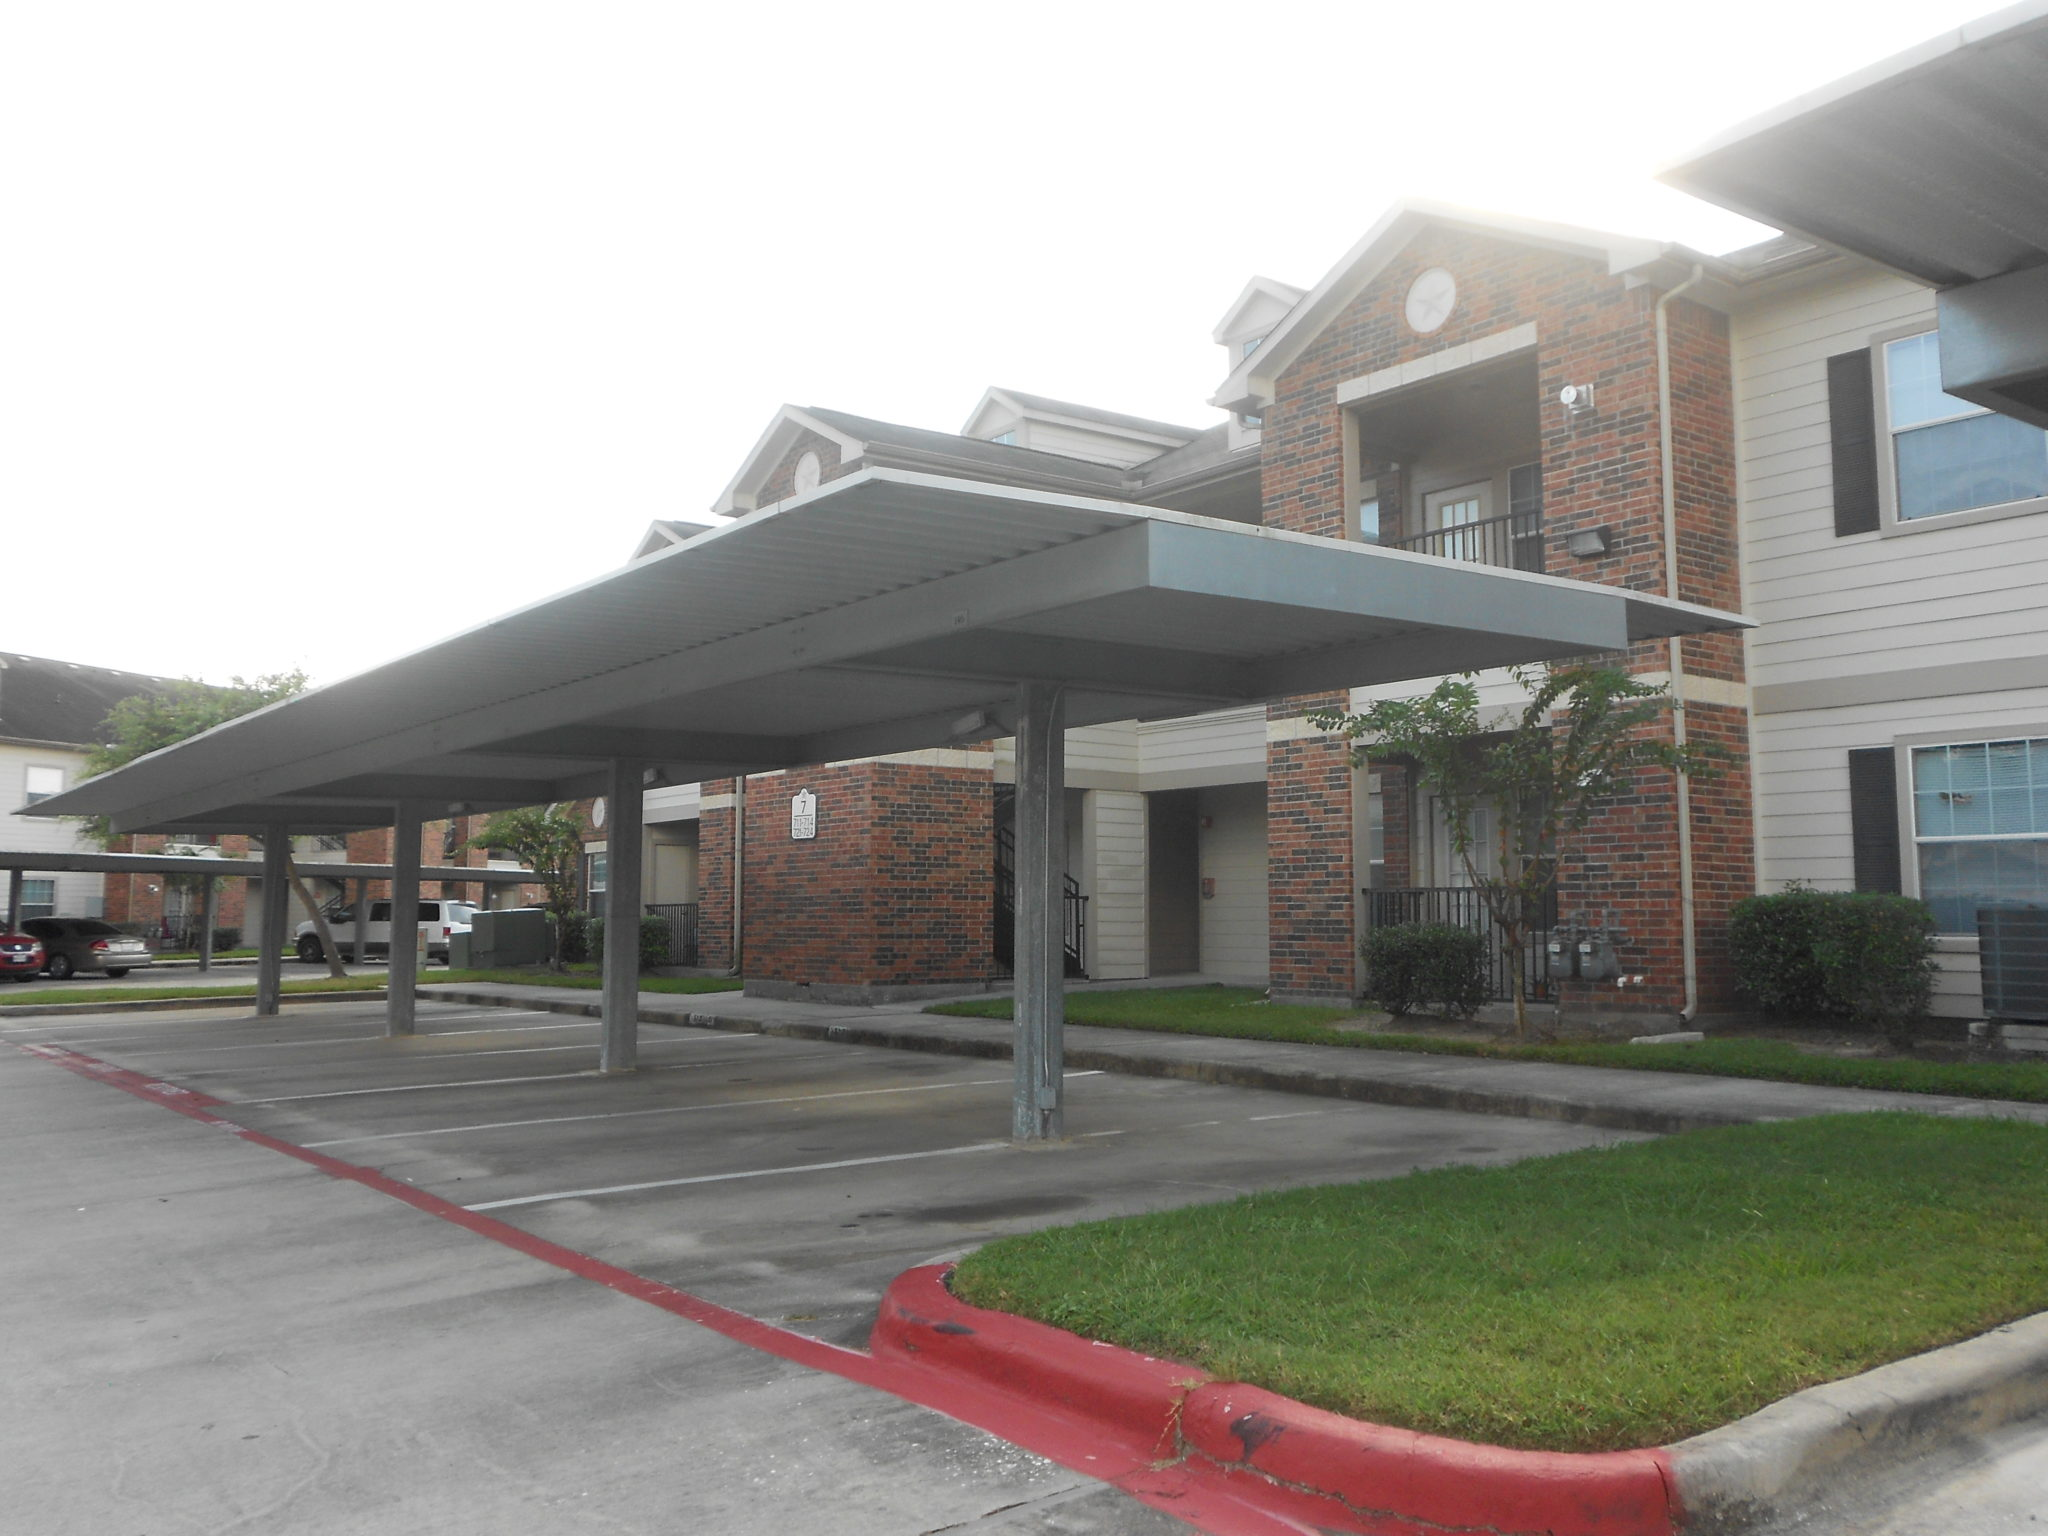 Atascocita Pinesw parking carport building